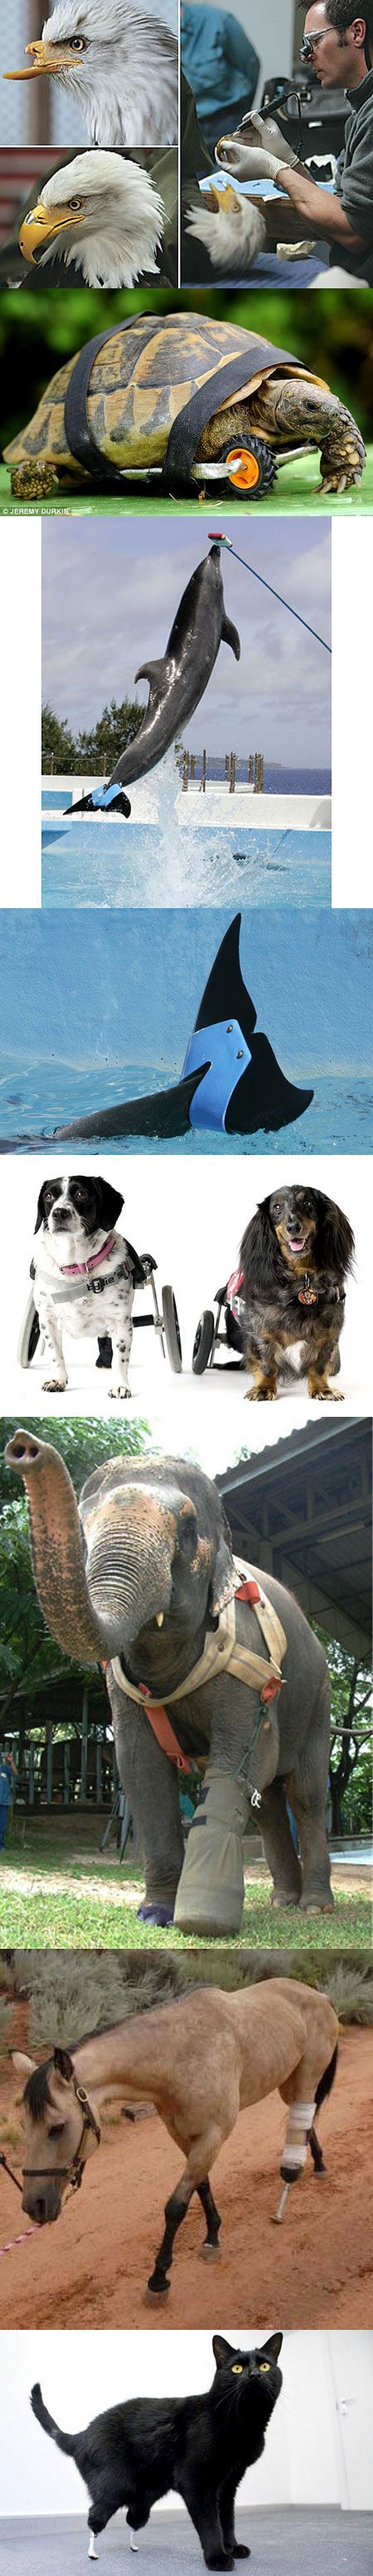 Second Chances: Veterinary Medicine, Awesome, My Heart, Second Chances, Human Restoration, Animal Friends, Help Animal, Animal Prosthetic, People